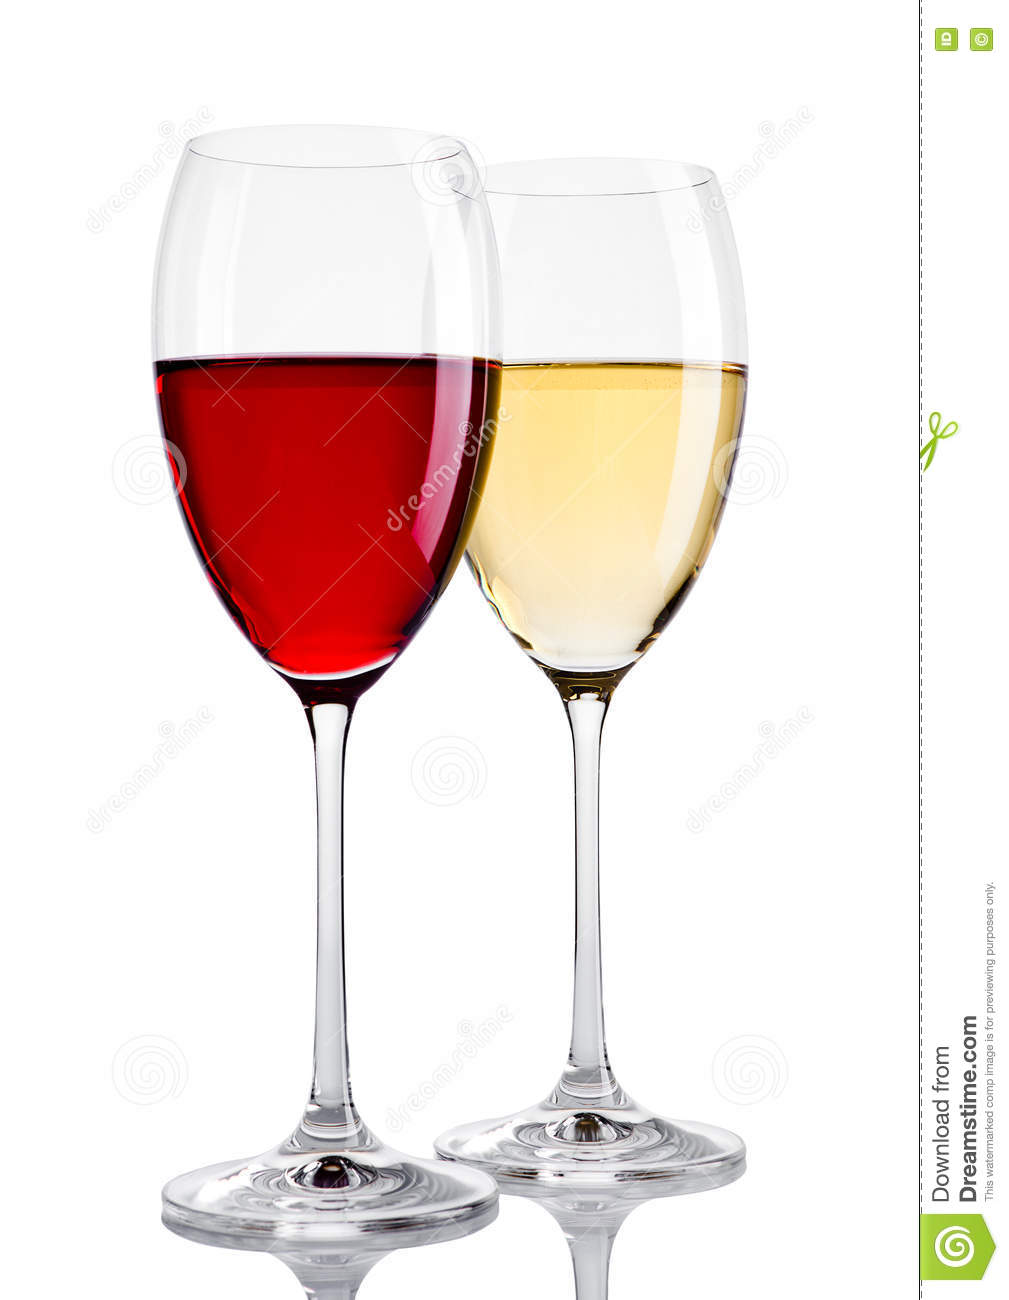 Glass of red and white wine on white